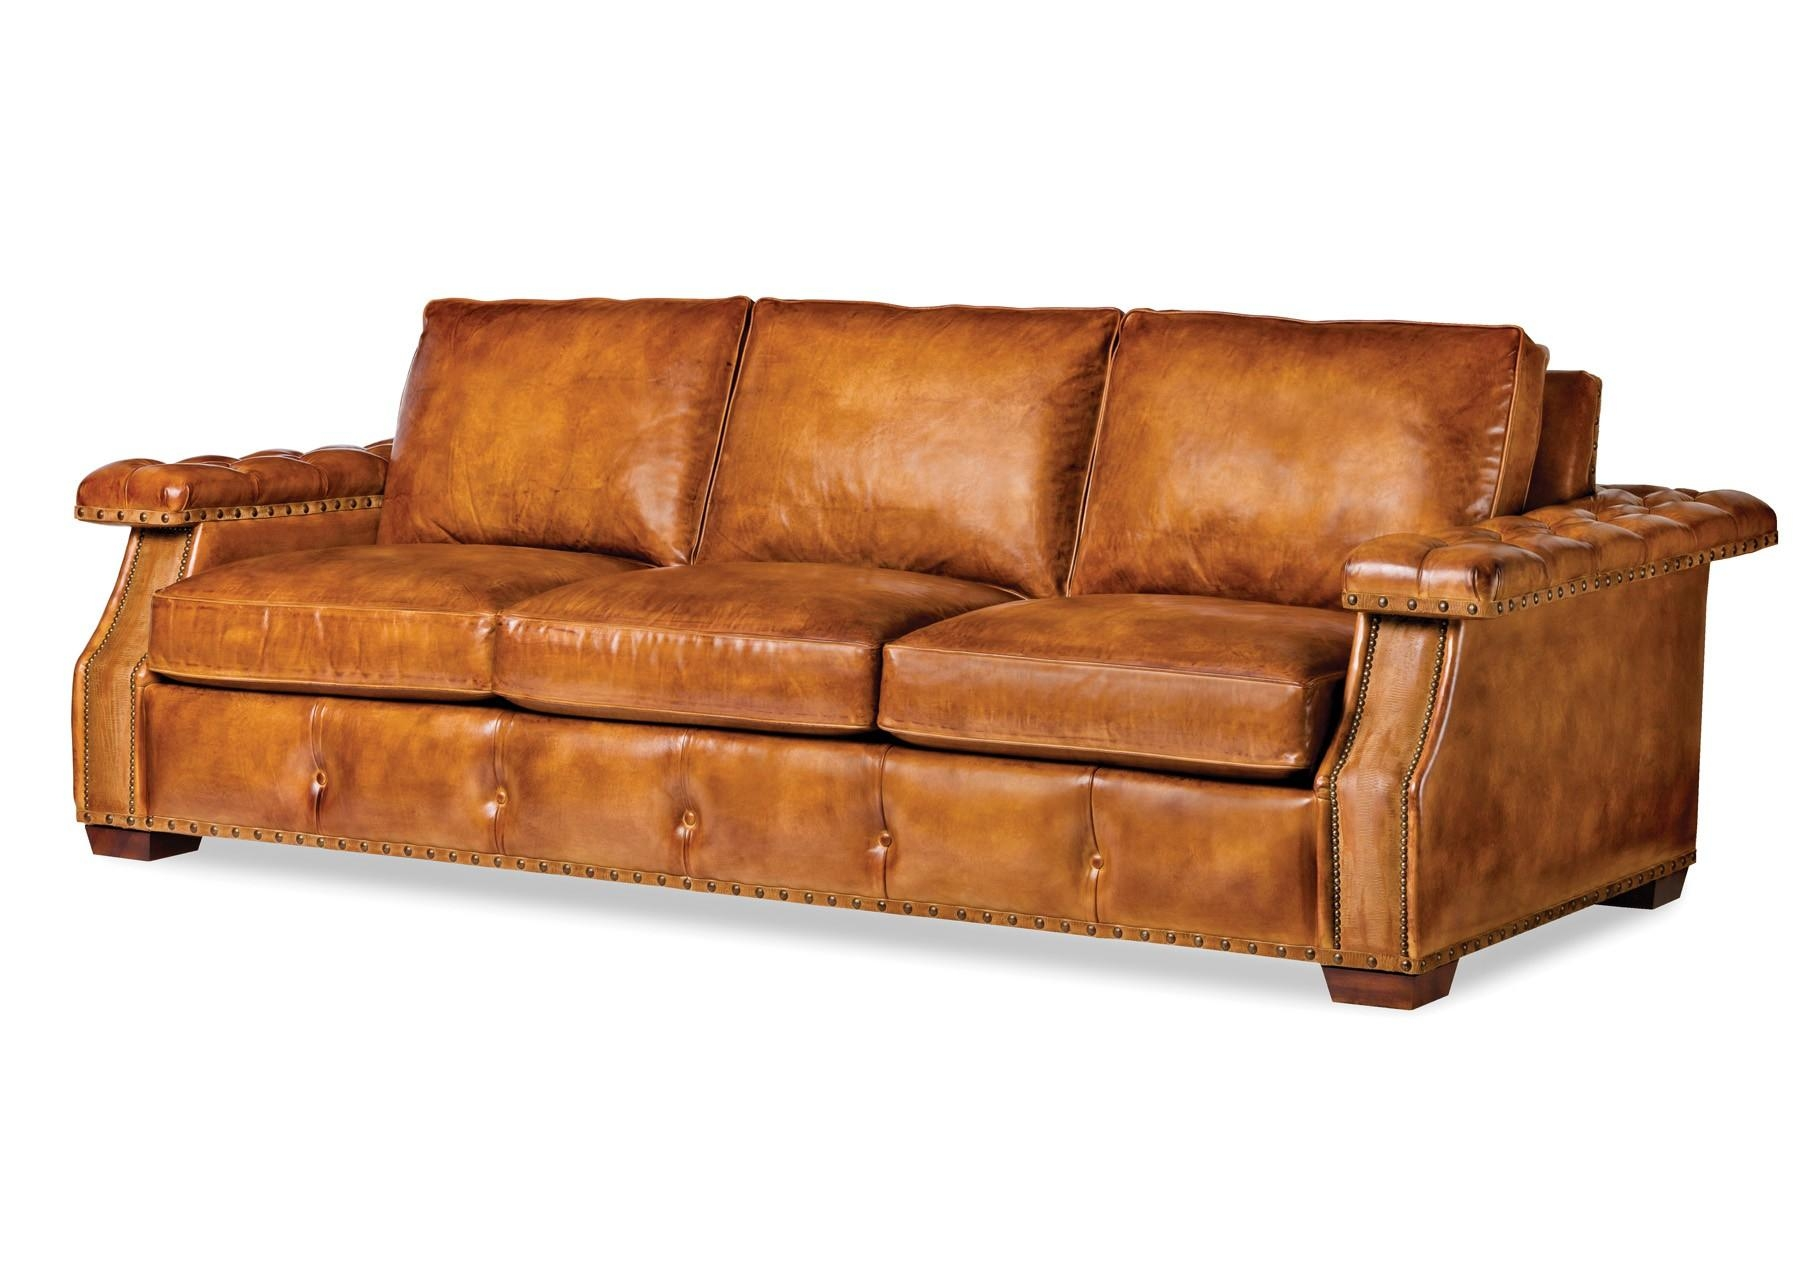 camel colored leather sofas sofa design in philippines interior by casa pino